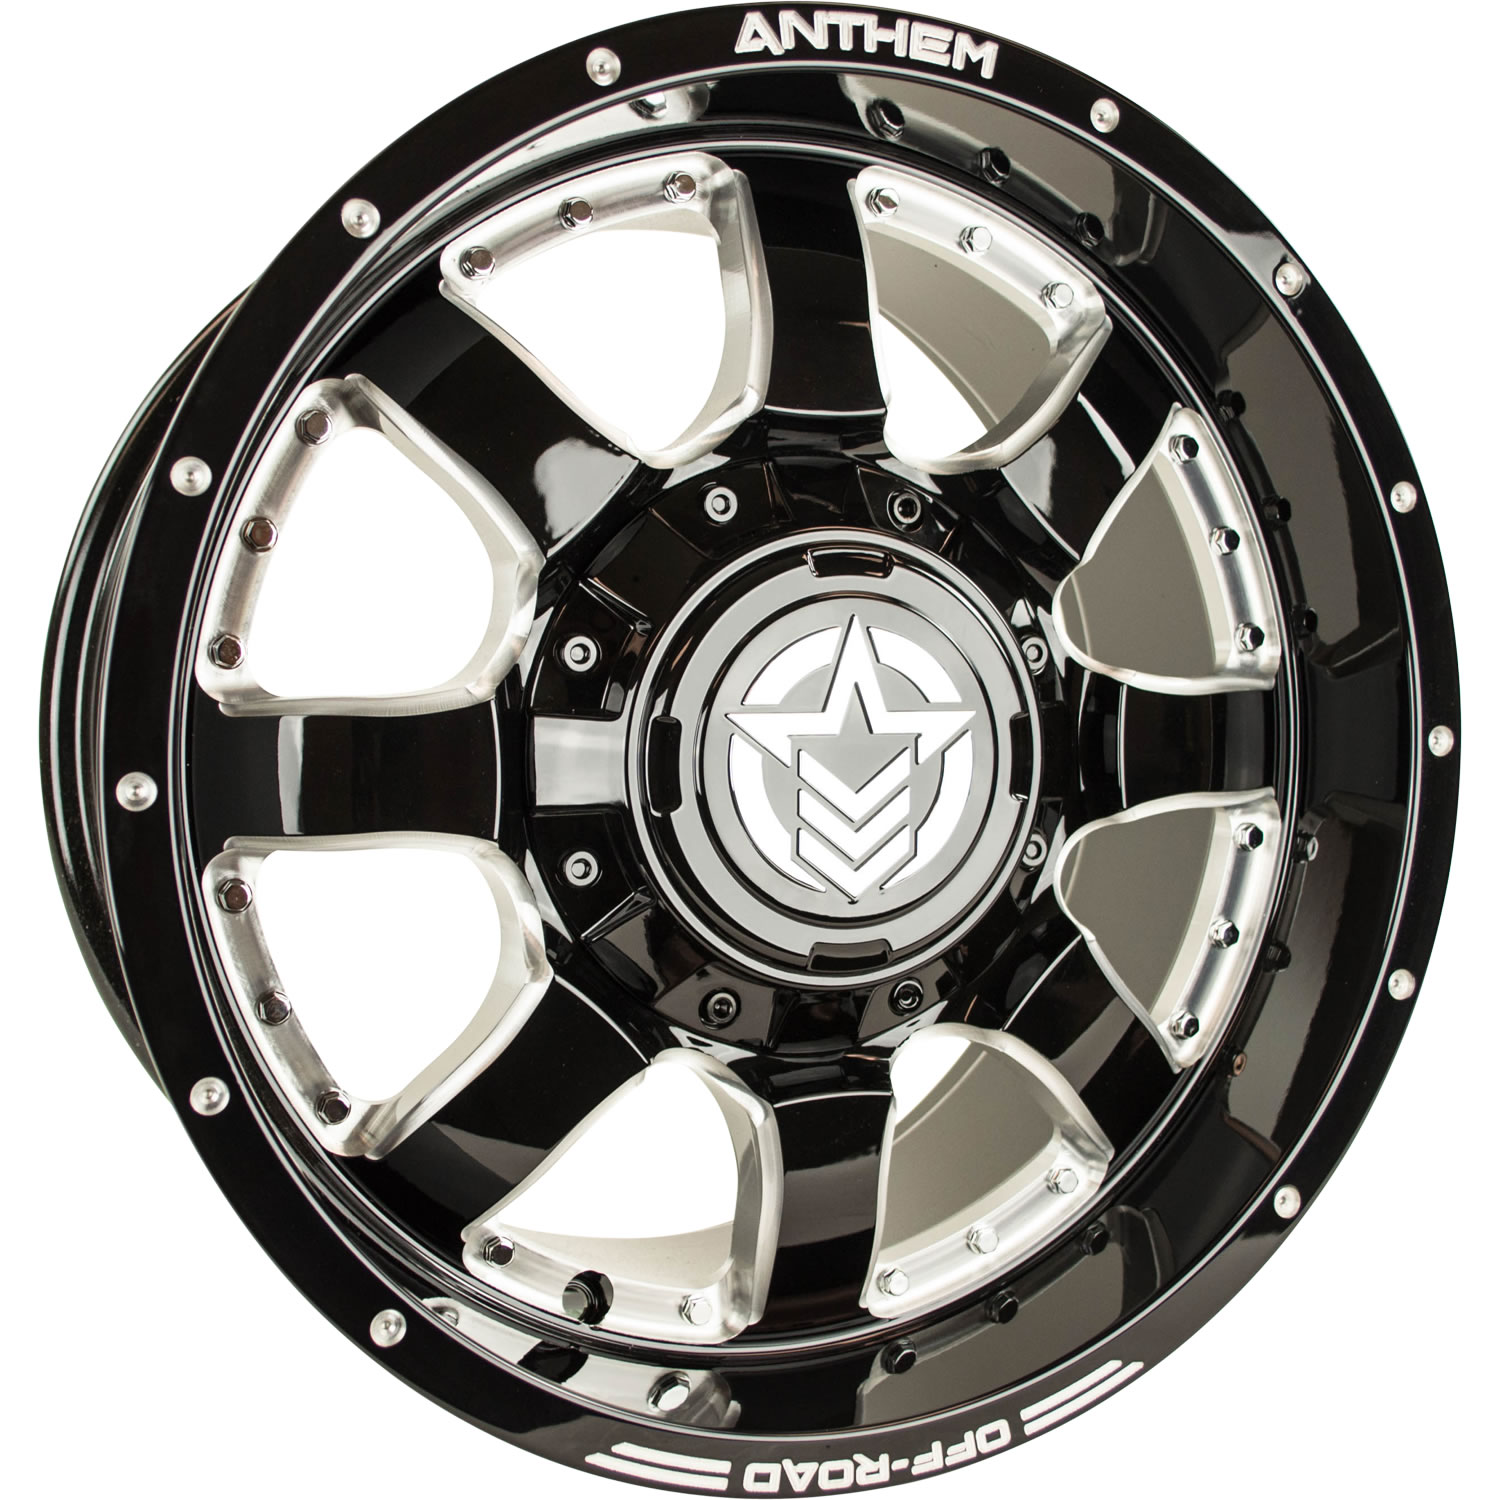 Anthem Commander 18x9 0mm | A731189058950